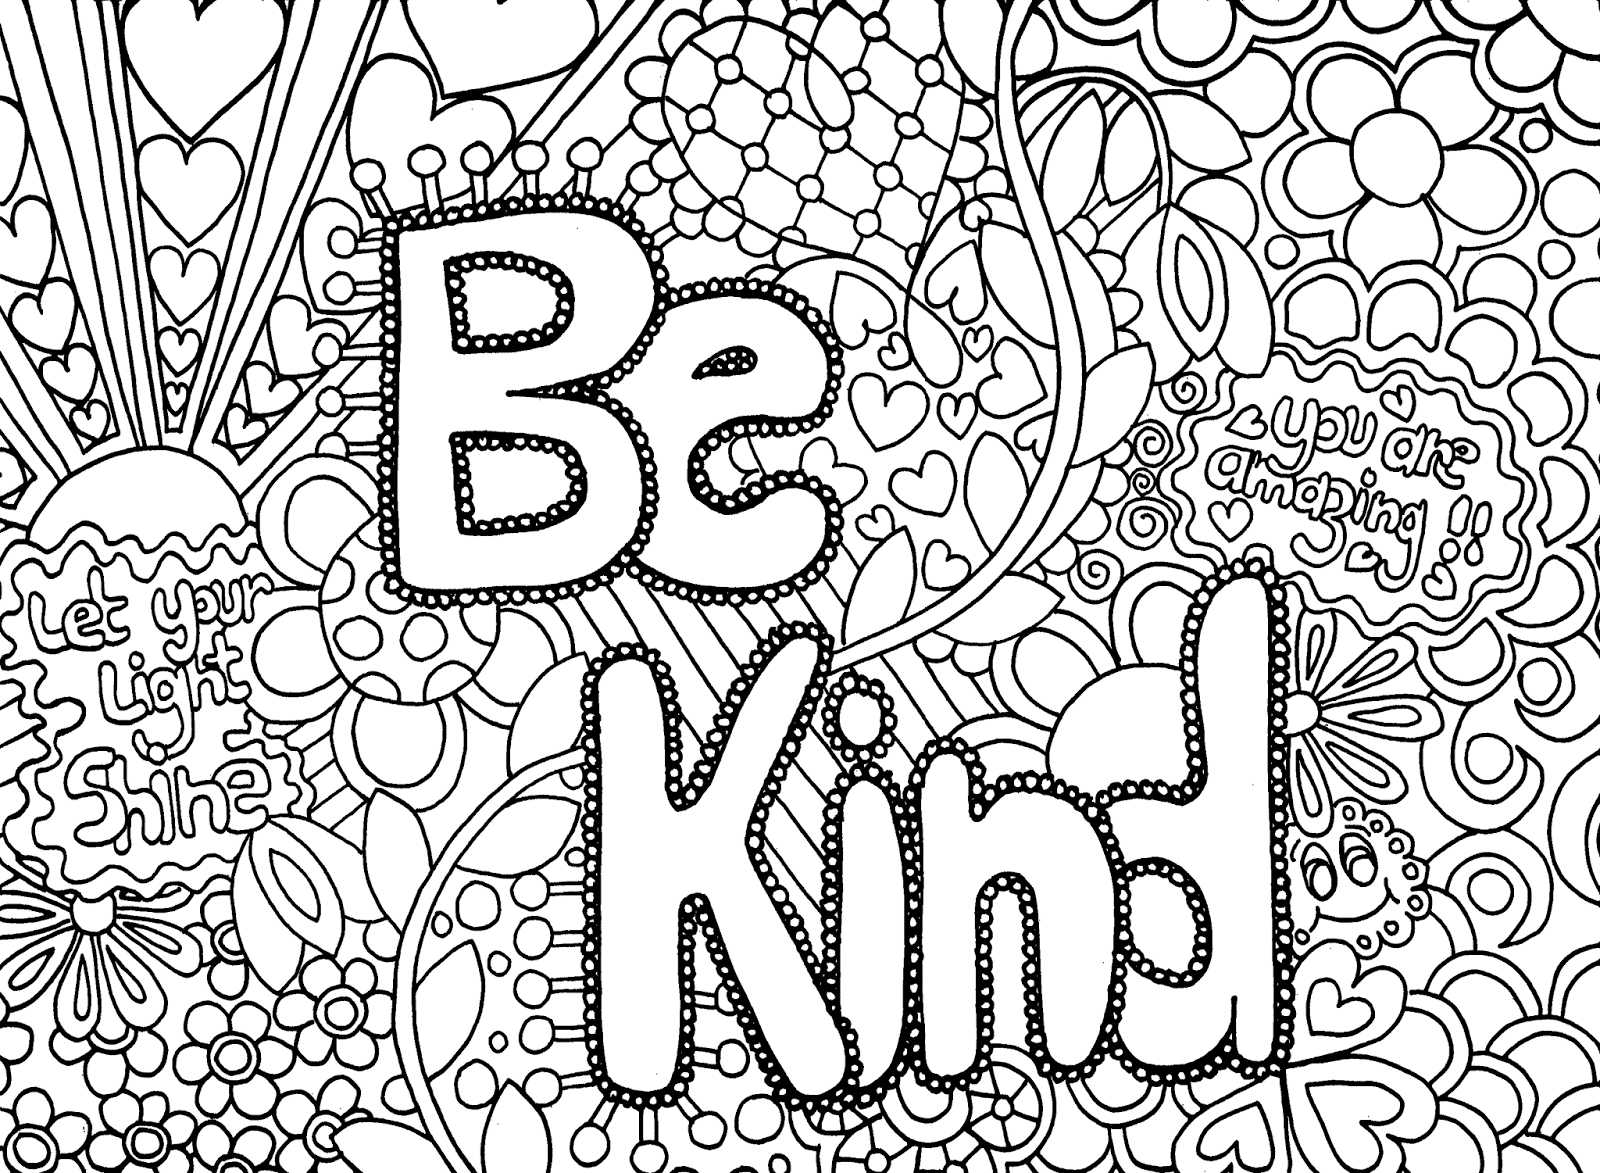 Hard Coloring Pages Free Large Images Coloring Pages For Teenagers Detailed Coloring Pages Abstract Coloring Pages